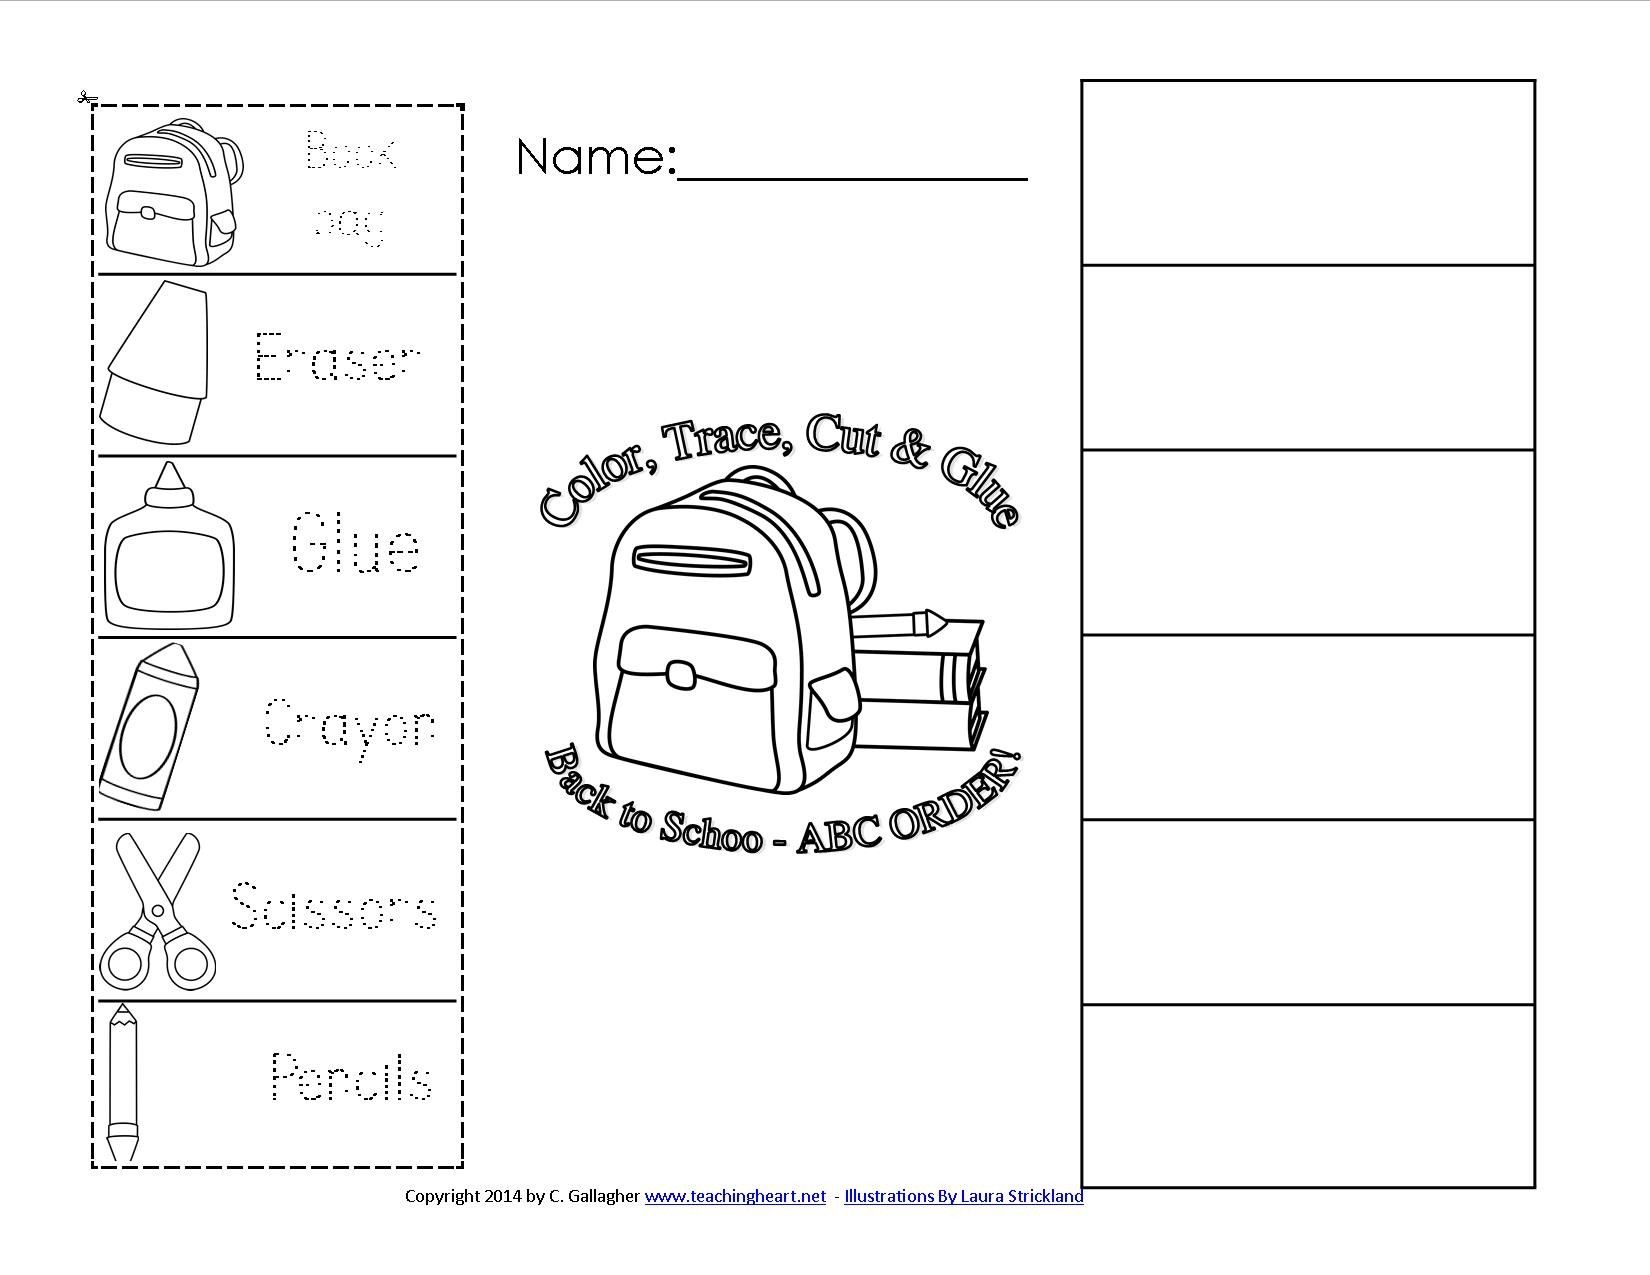 School Supplies Worksheet For Esl New Color Cut And Pasteorksheets On Create Name Tracing